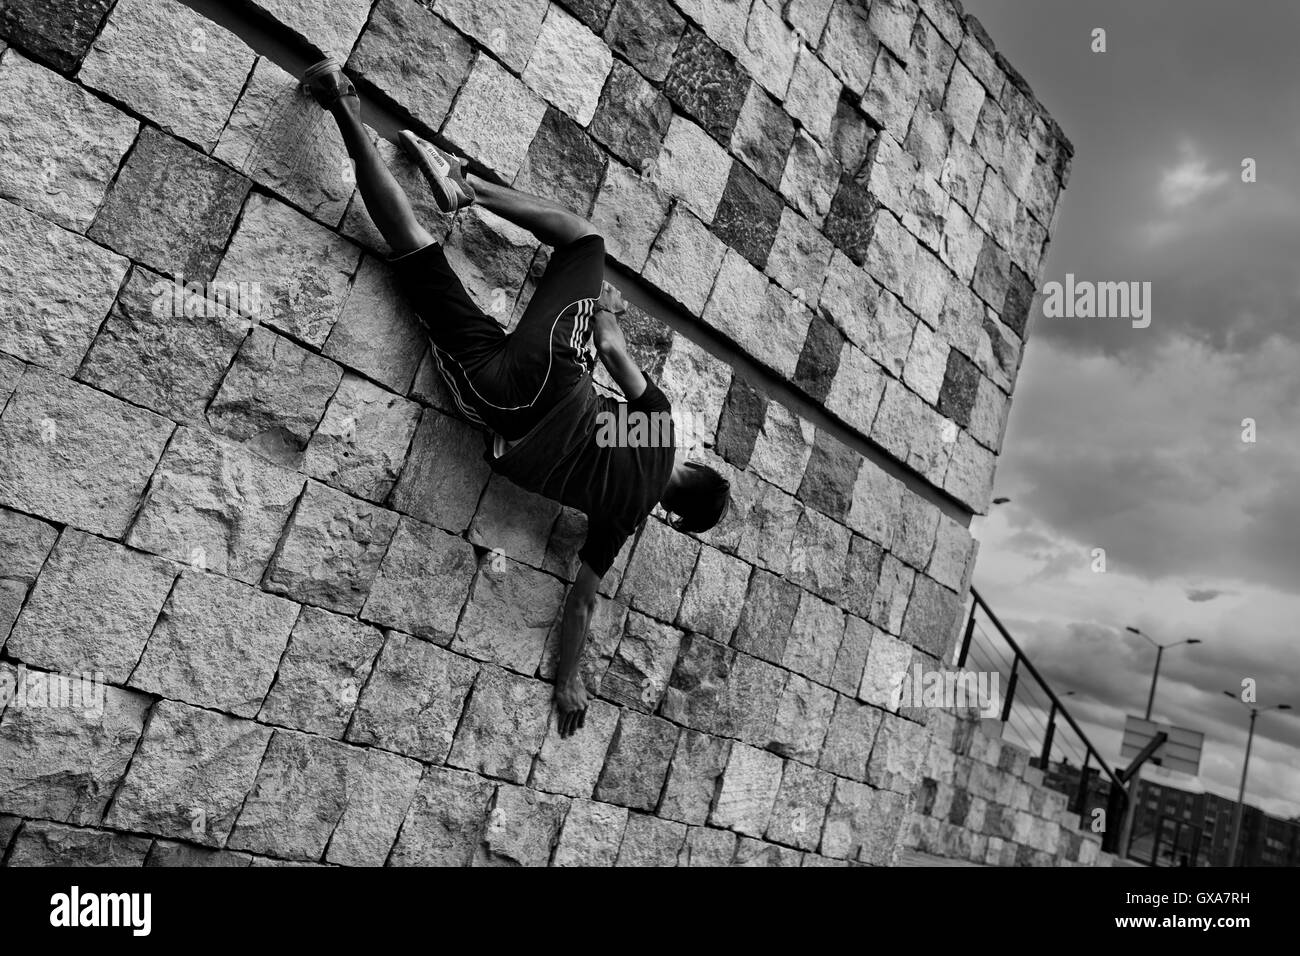 A Colombian parkour athlete shows off his climbing skills during a free running training exercise in Bogotá, - Stock Image